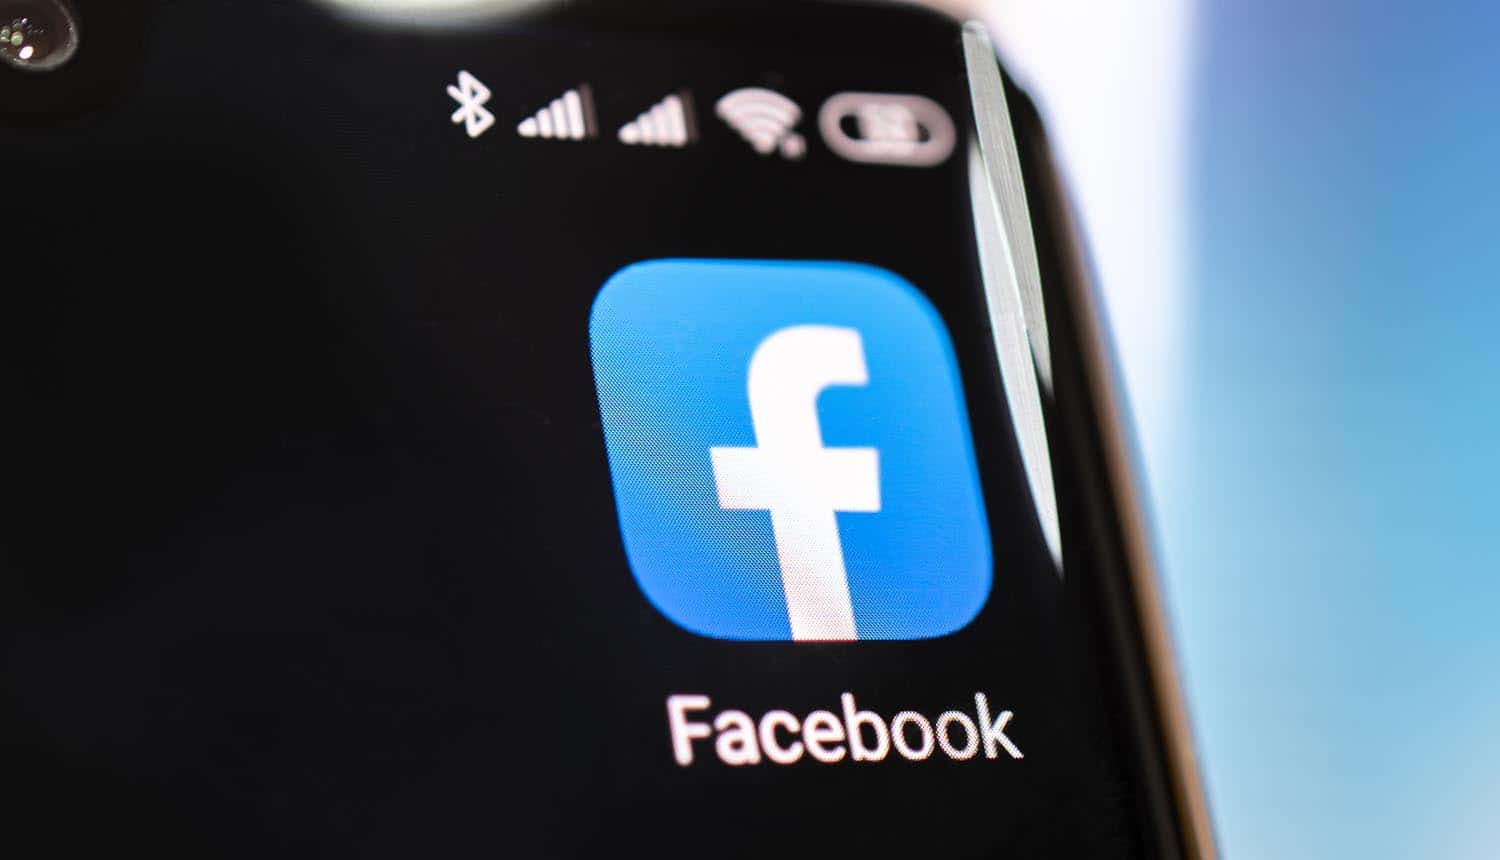 Facebook application on screen of an smartphone showing updated privacy policy for data sharing